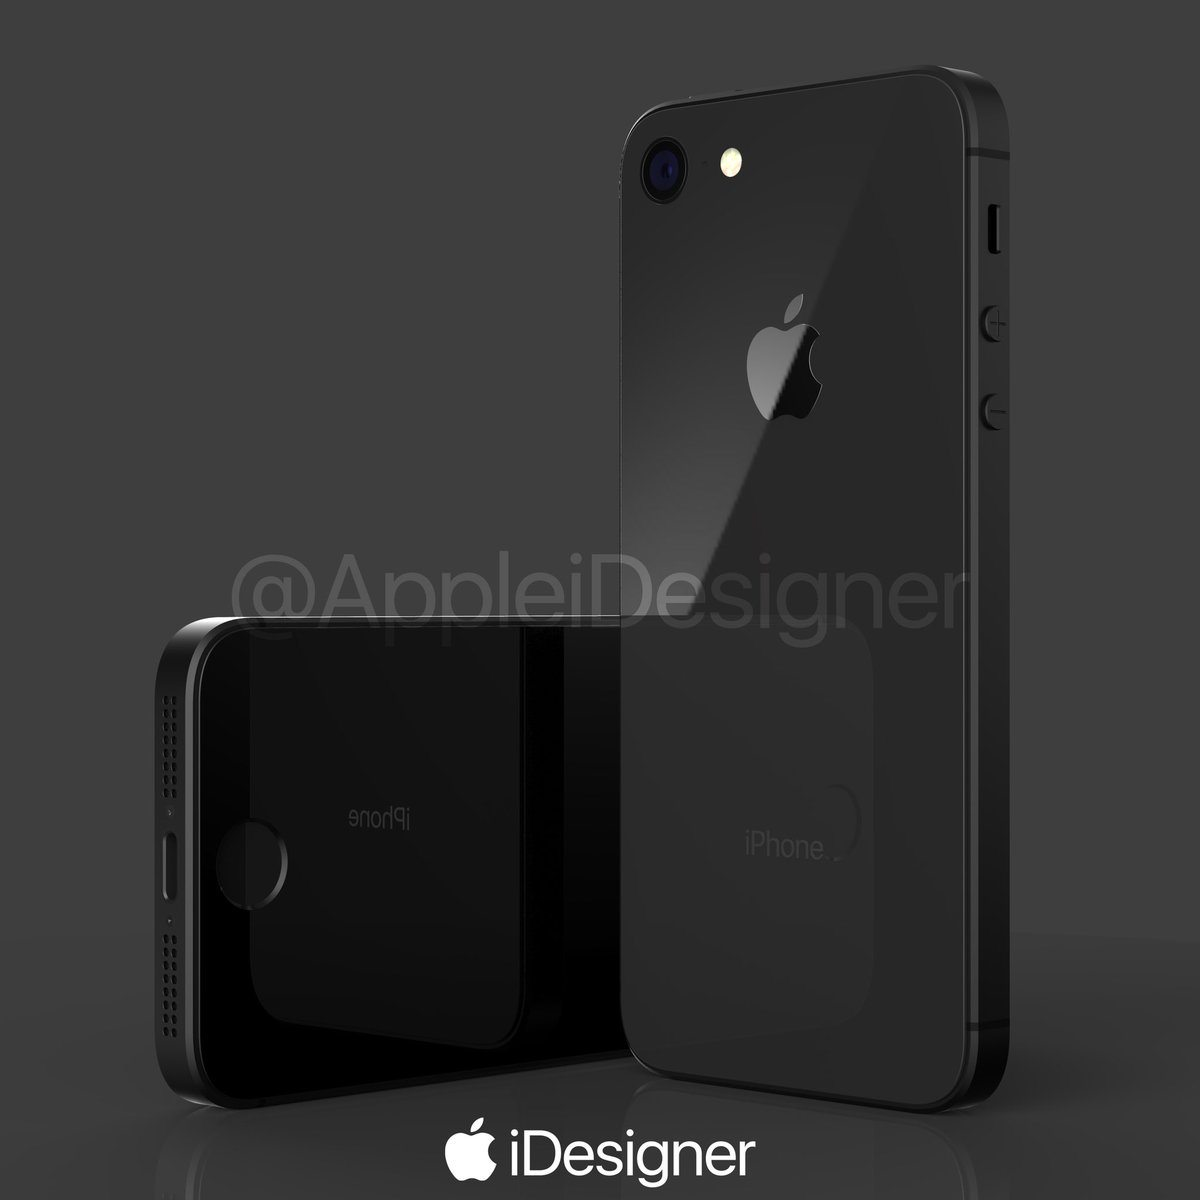 According To Indian Blog Tekz24 The IPhone SE 2 Will Boast An A10 Fusion System On A Chip Gigabytes Of RAM 32GB Or 128 GB Internal SSD Storage